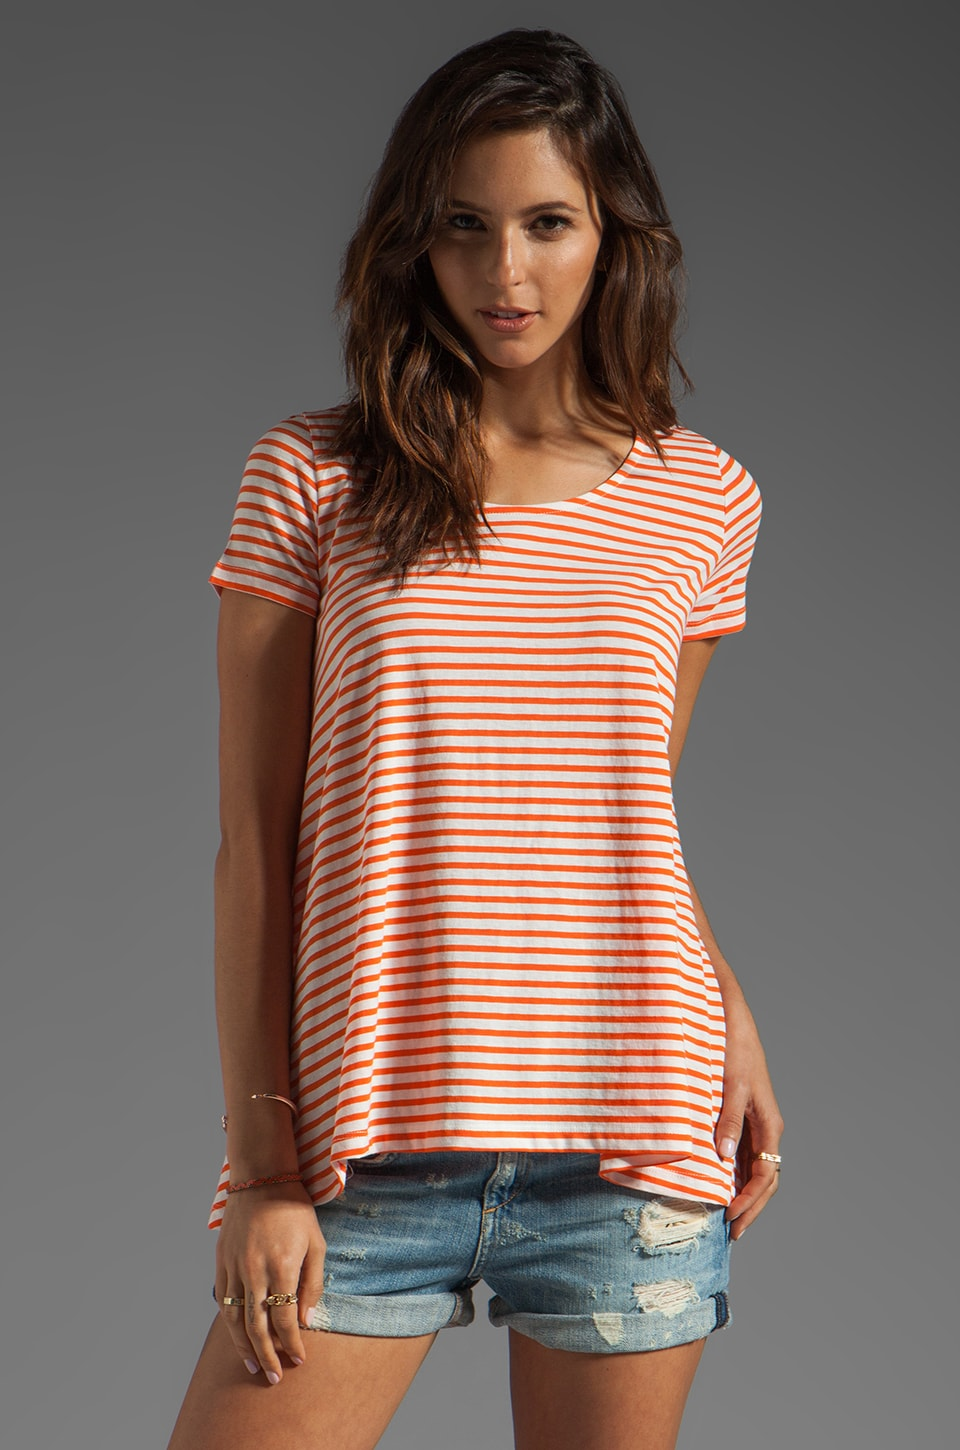 DemyLee Hudson Sailor Stripe Top in White/Orange